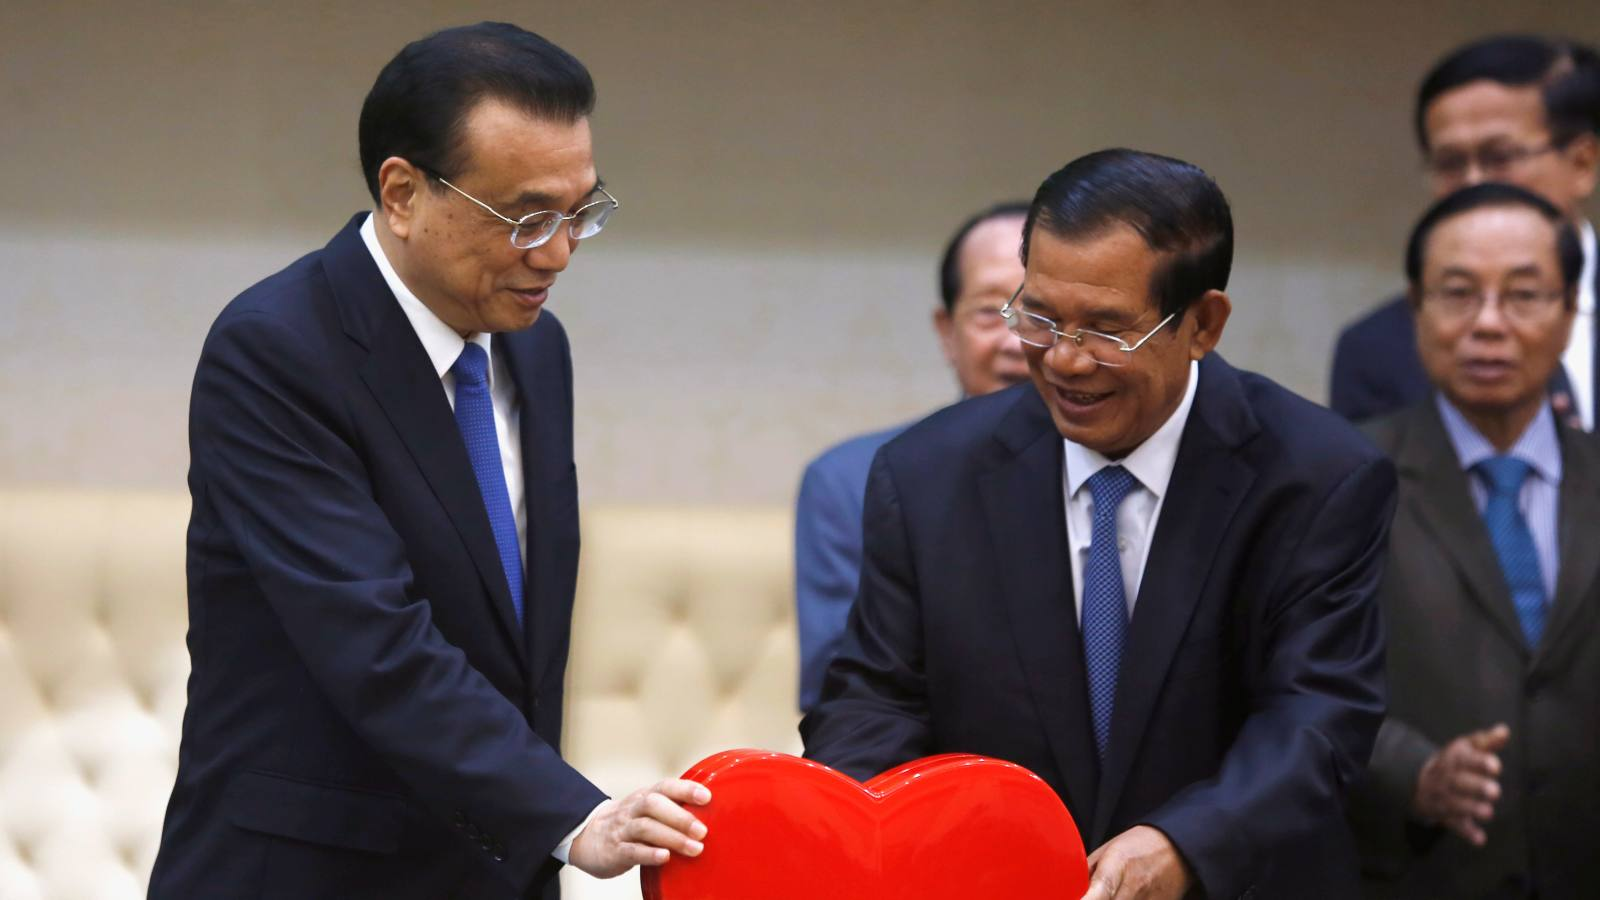 us and eu bolster threat of sanctions before cambodian elections US and EU bolster threat of sanctions before Cambodian elections https 3A 2F 2Fs3 ap northeast 1